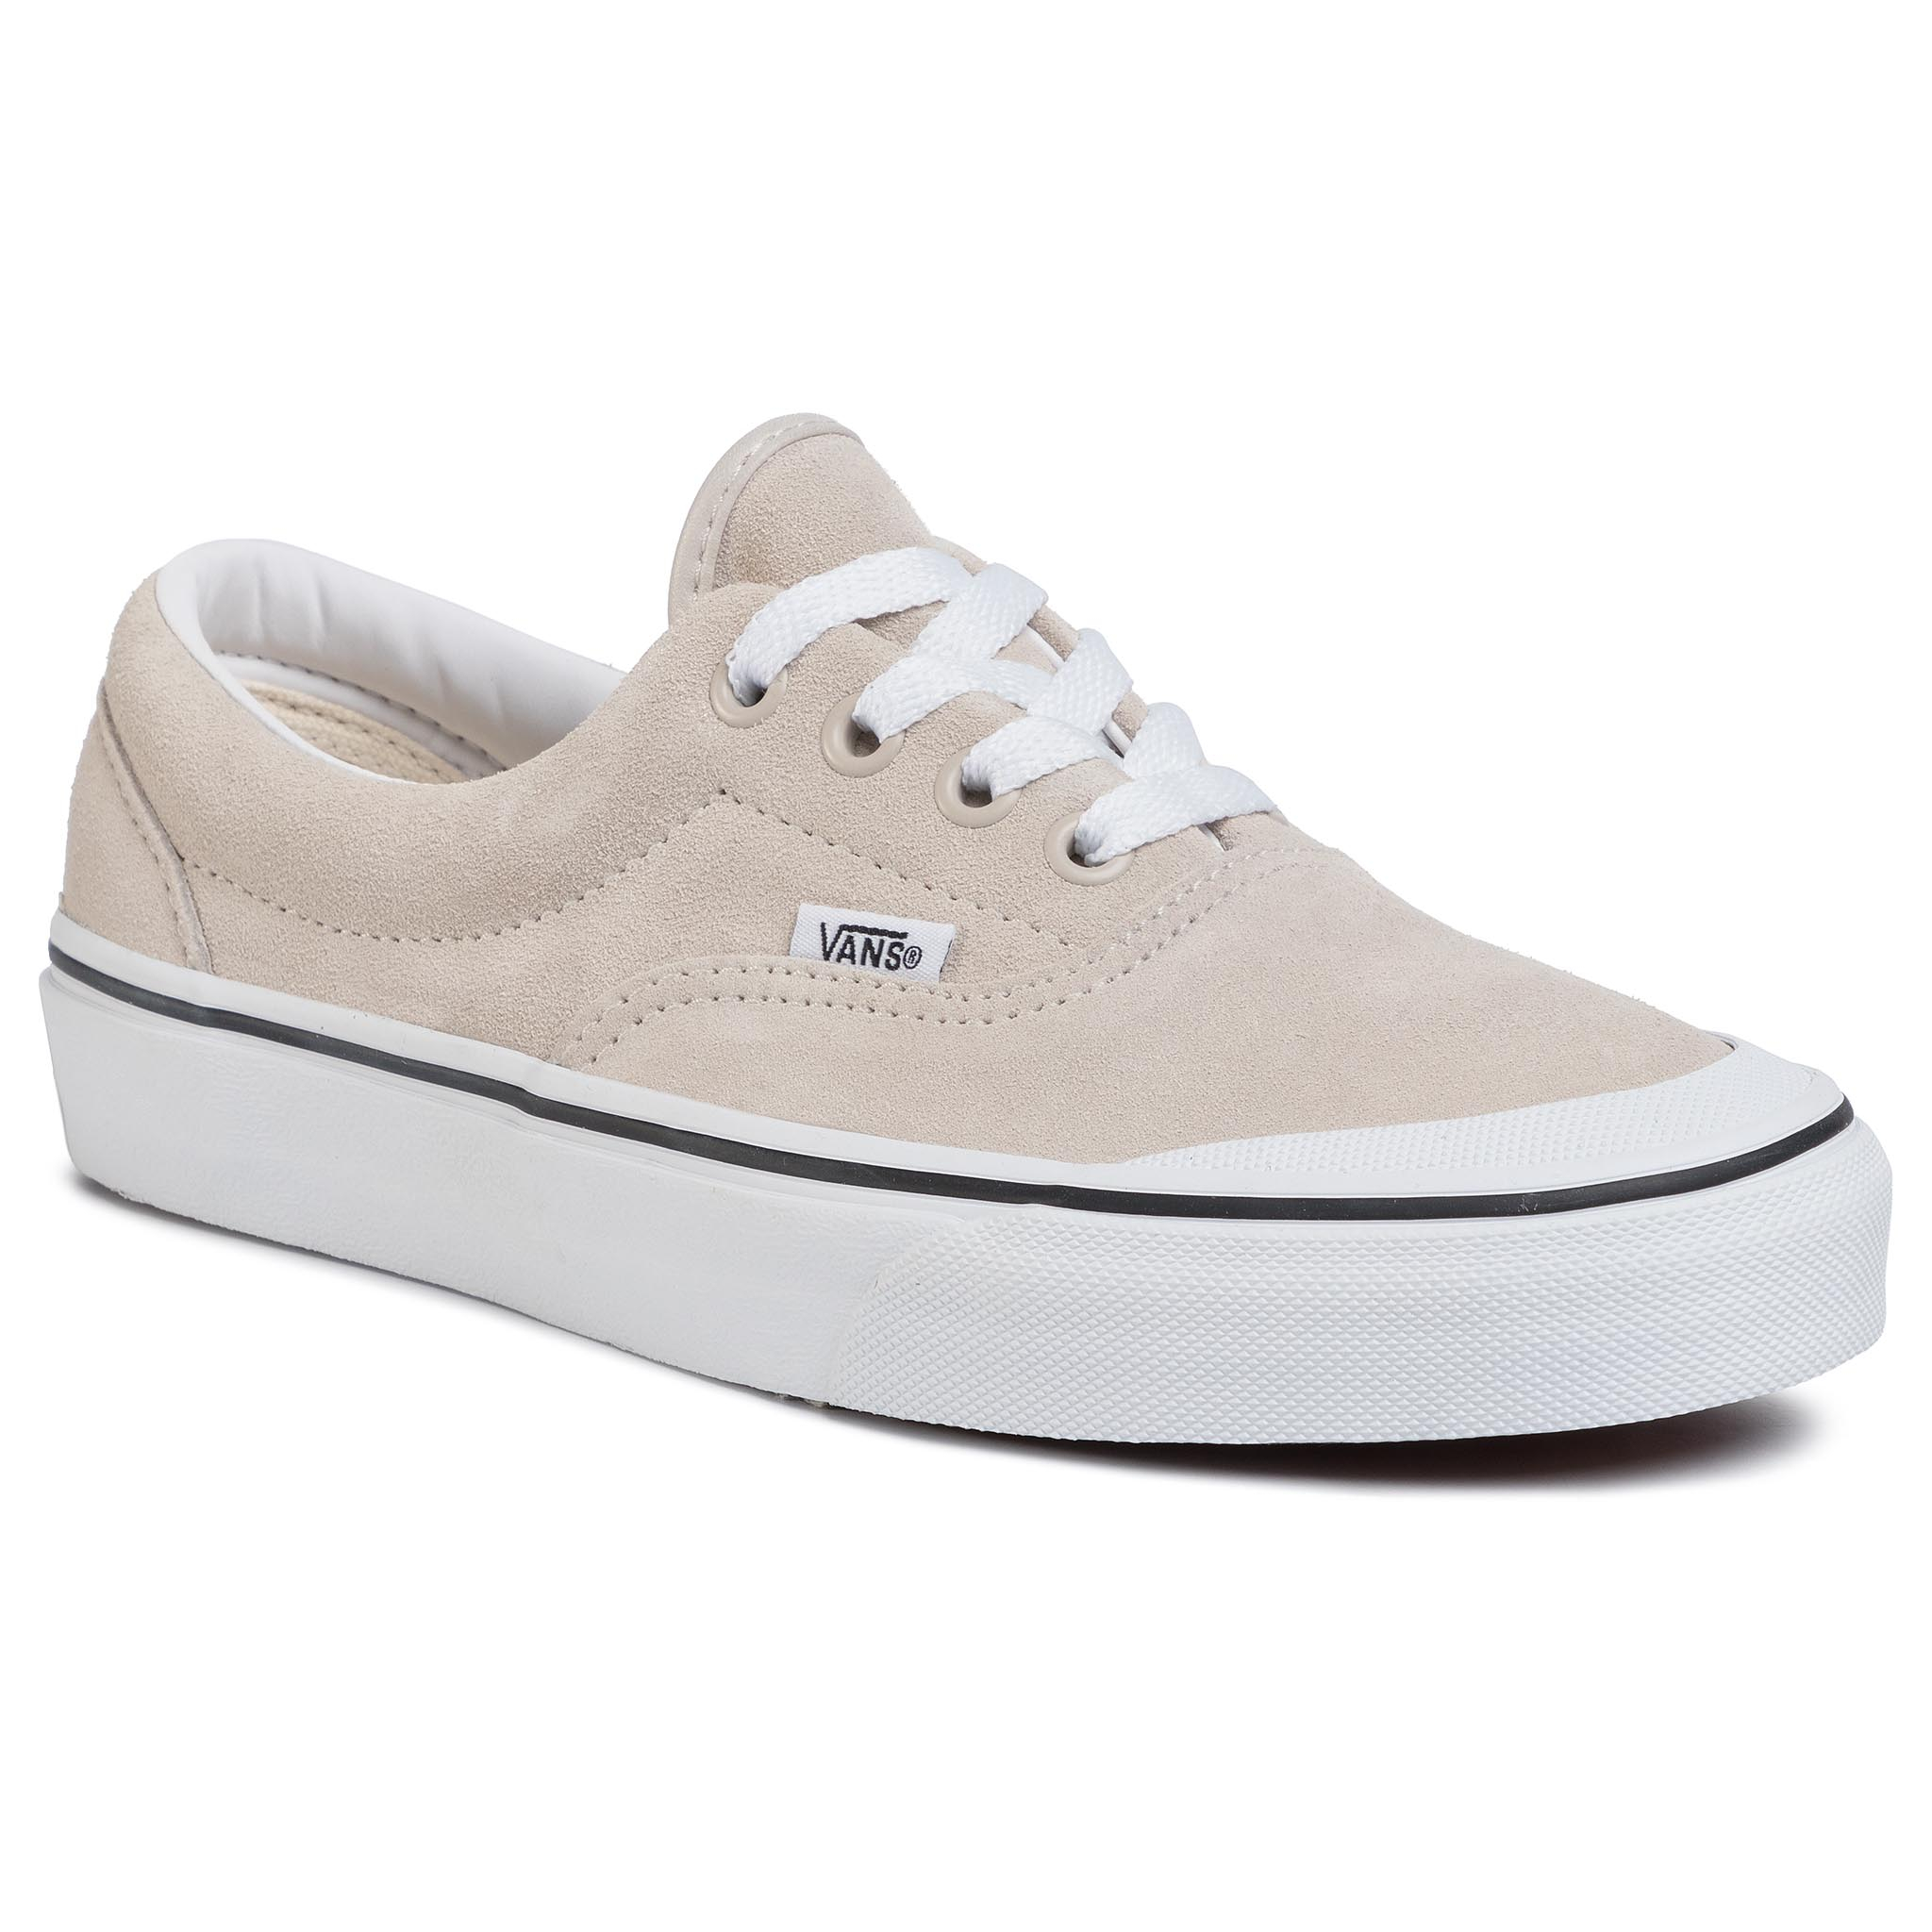 Teniși Vans - Era Tc Vn0a4btpxb11 (Suede)Rainy Day/Tr Wht imagine epantofi.ro 2021